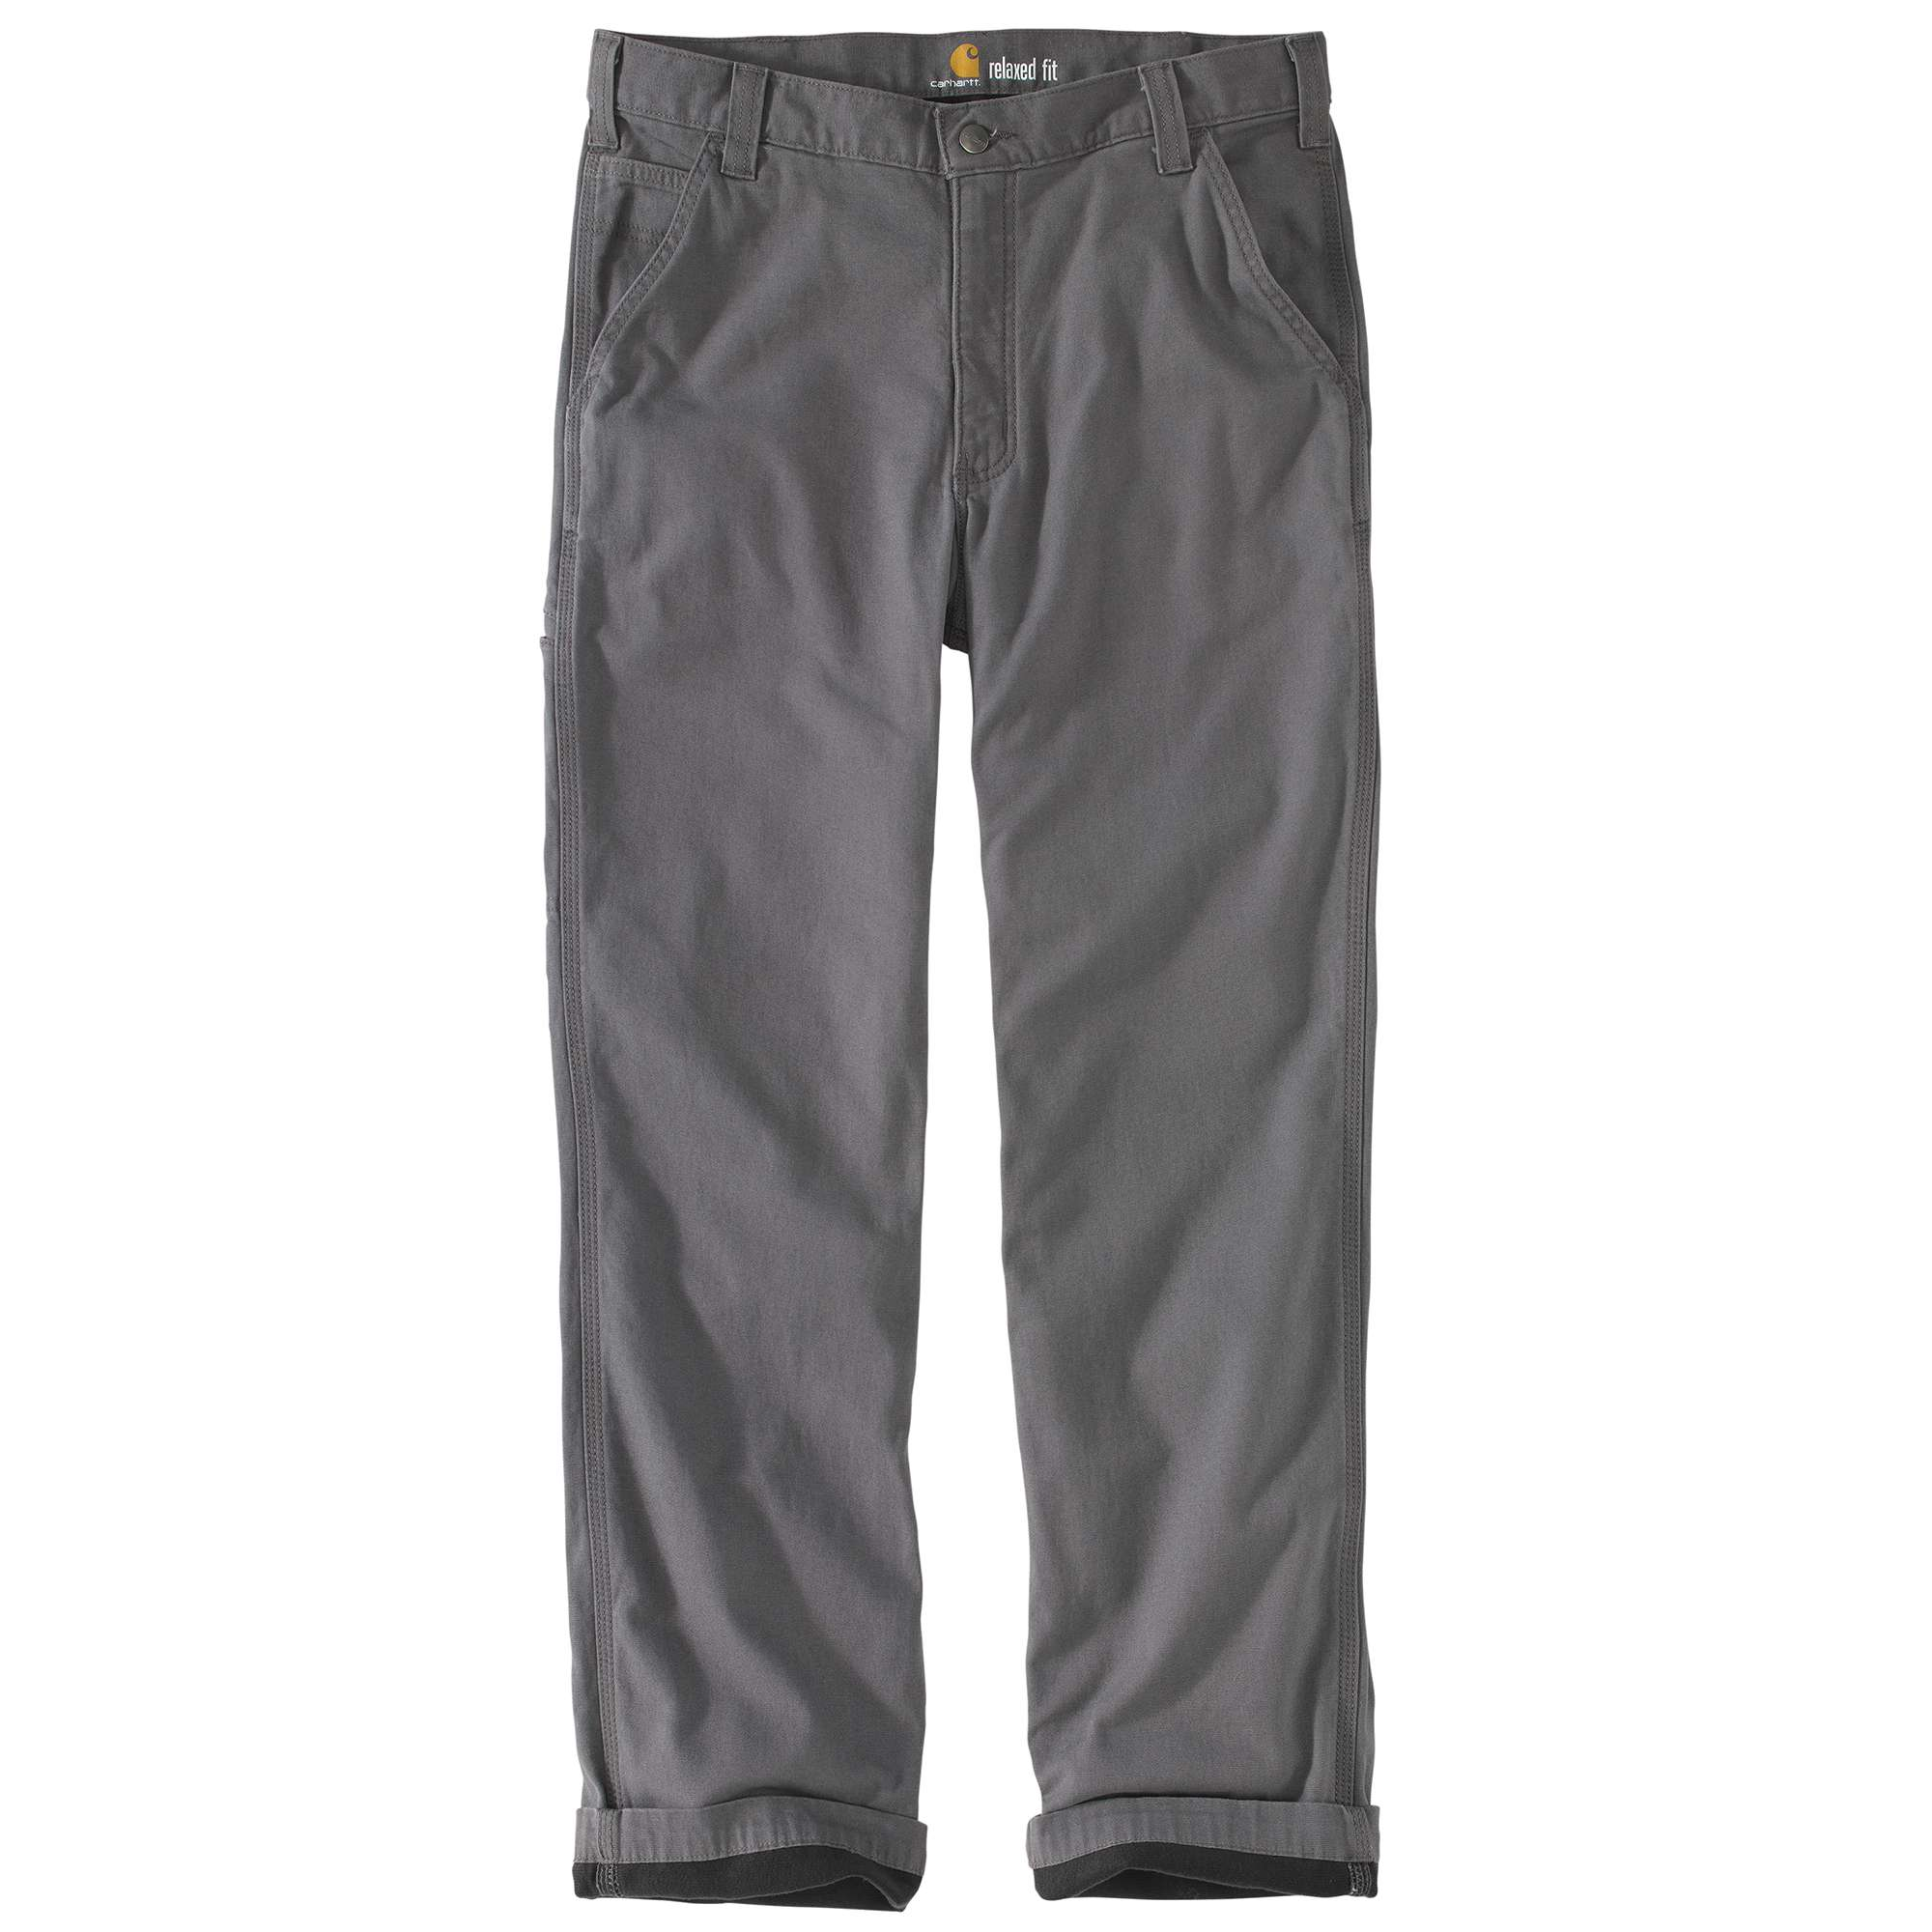 MEN'S RUGGED FLEX RIGBY KNIT LINED PANT